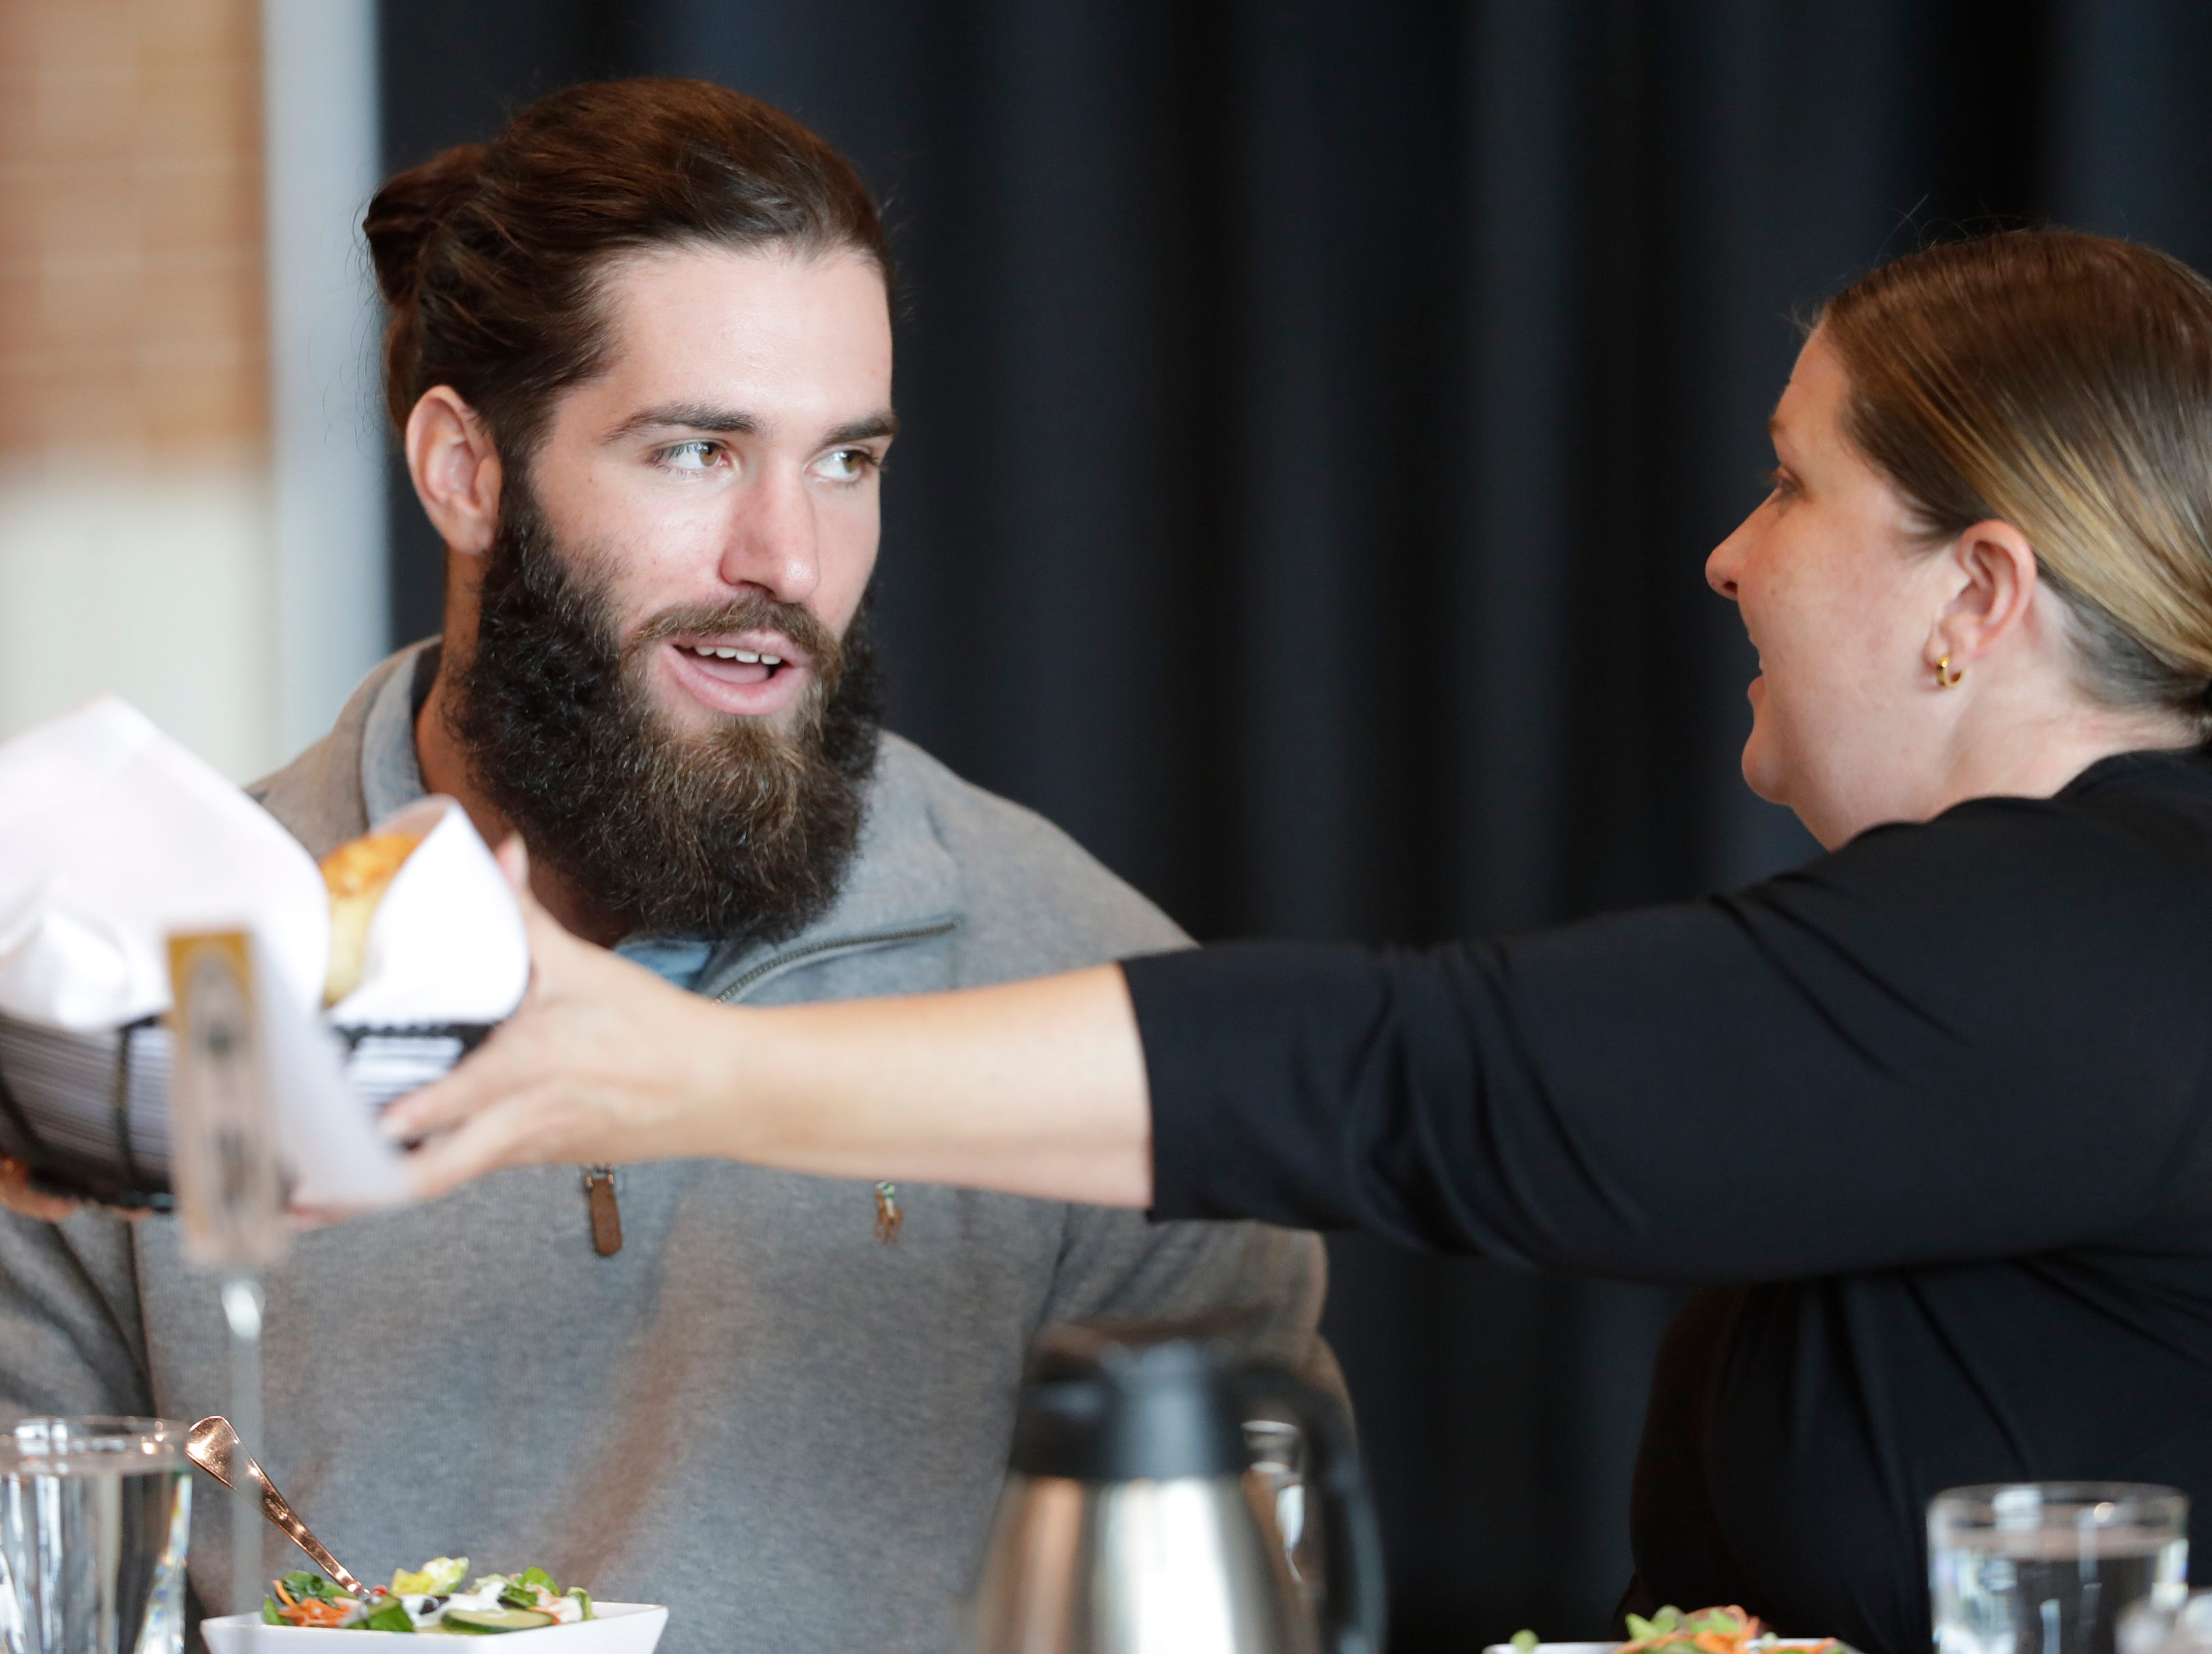 Green Bay Packers wide receiver Jake Kumerow (16) talks during the Green Bay Chamber of Commerce Welcome Back Packers Luncheon at Lambeau Field Wednesday, August 29, 2018 in Green Bay, Wis.